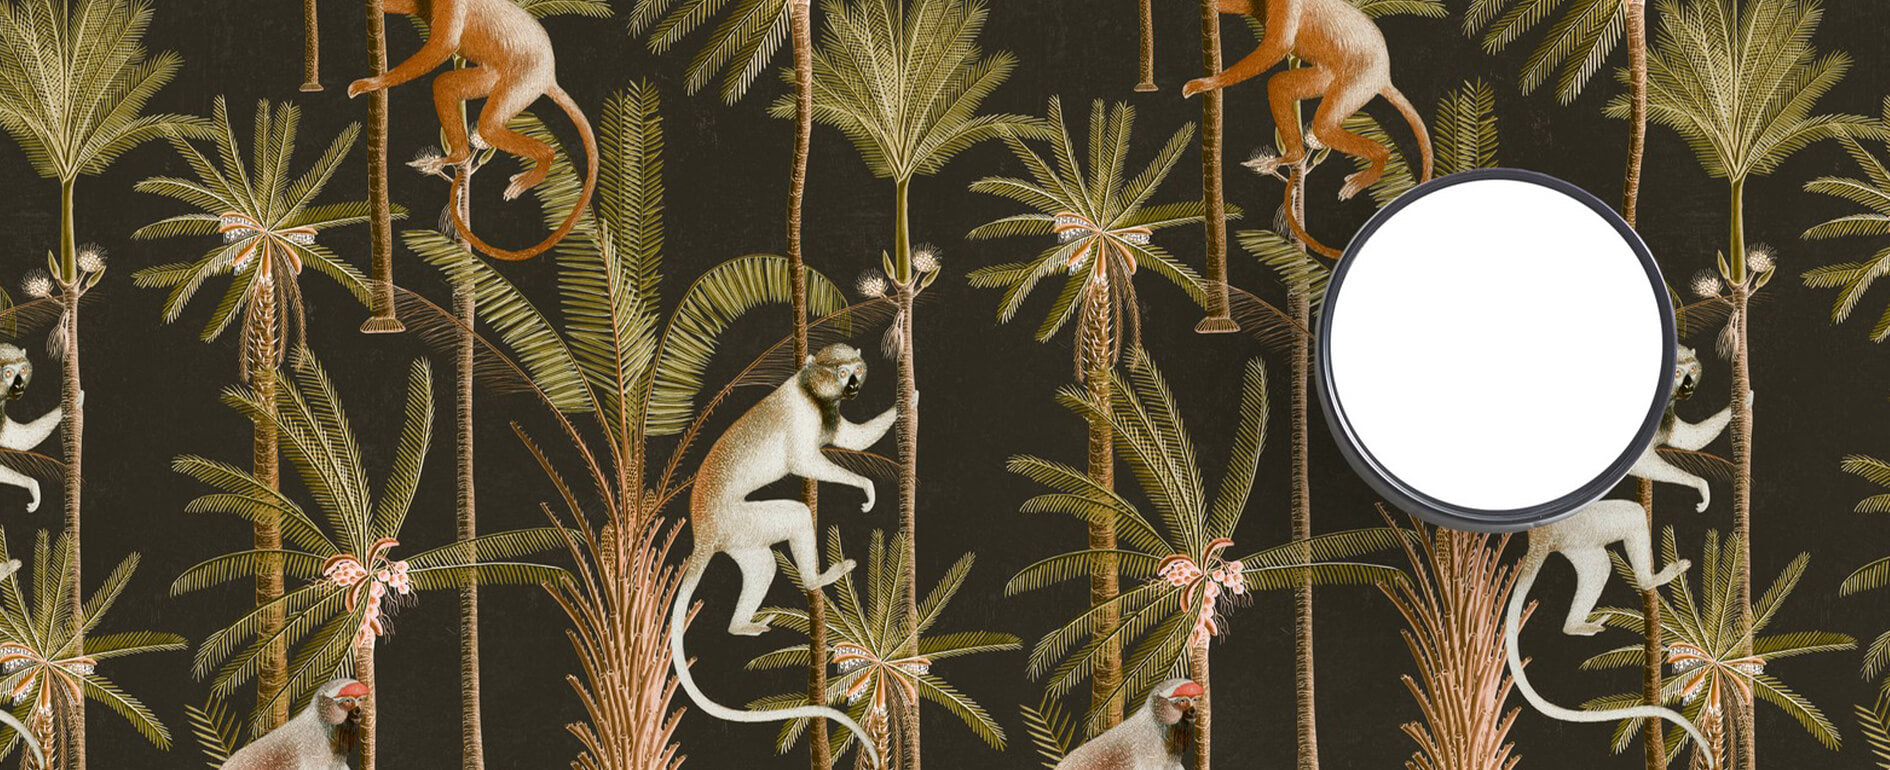 Close-up of designer Mind The Gap wallpaper which features monkeys and palm trees on a black background